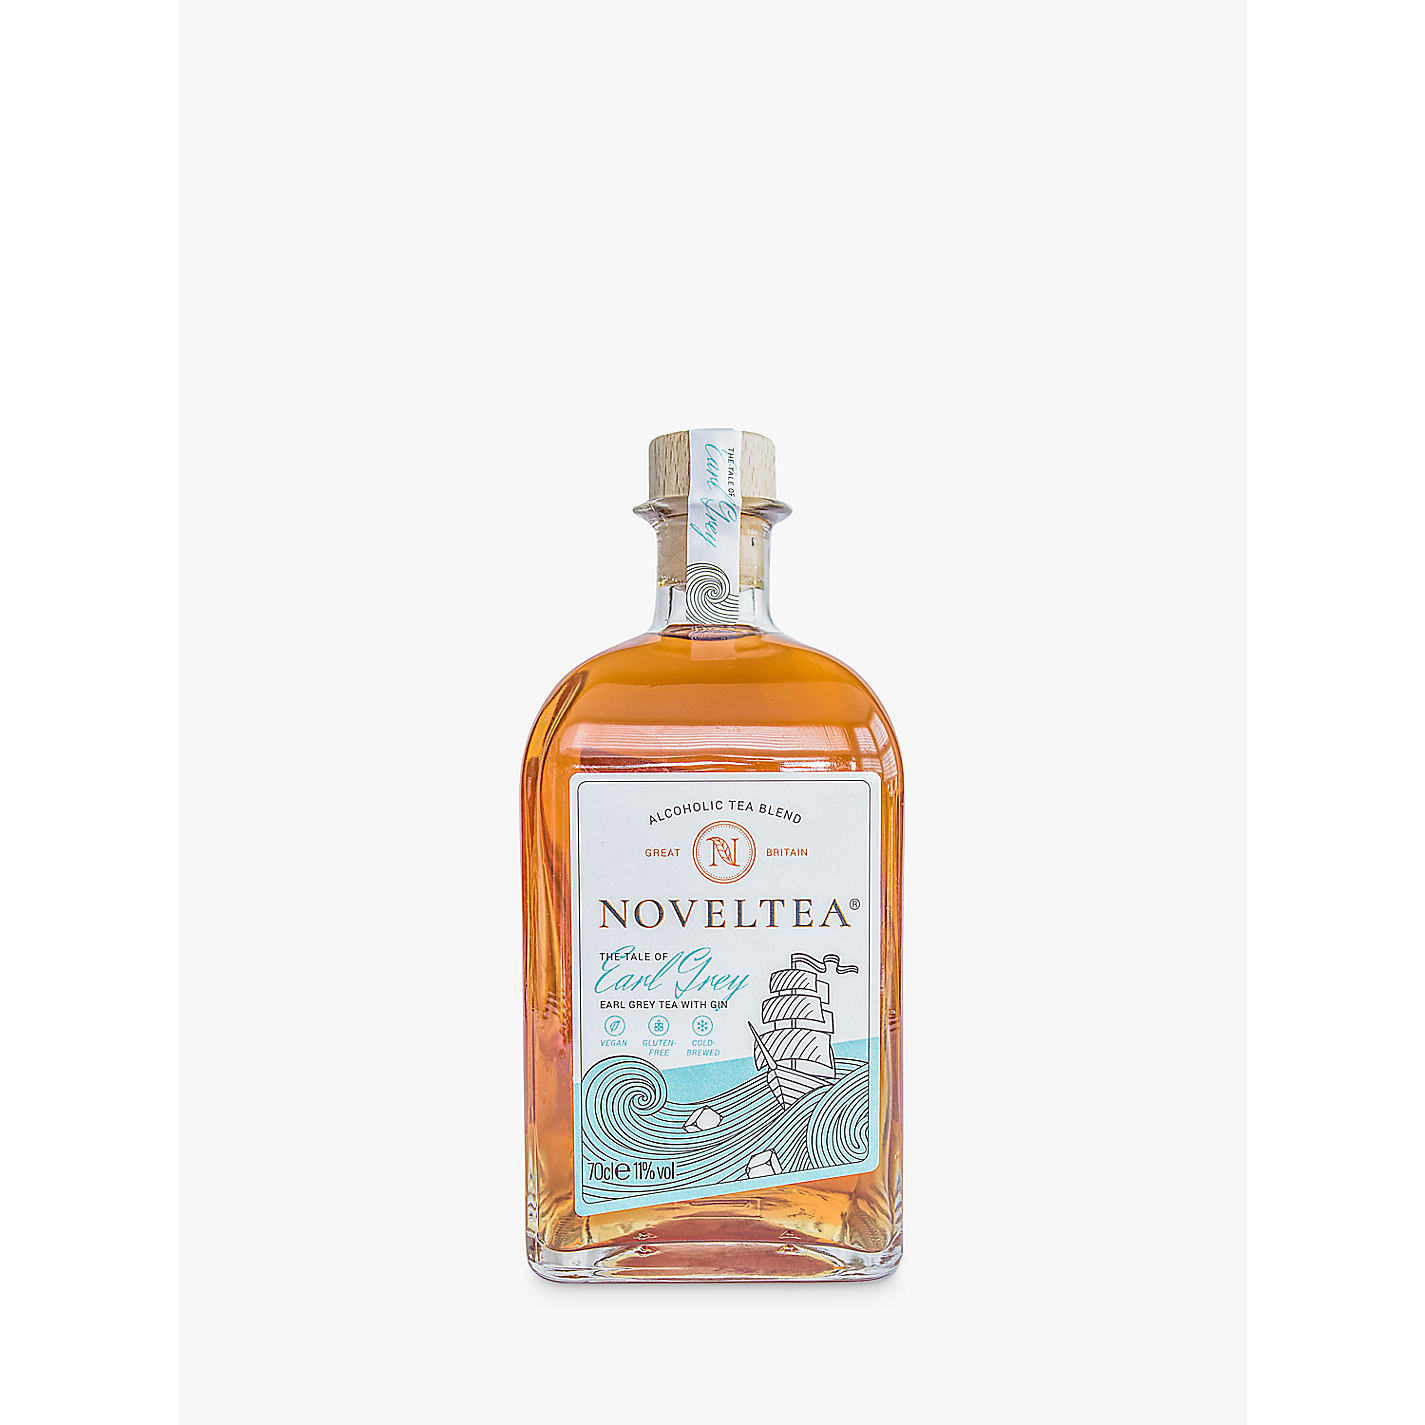 Alcohol gifts john lewis buy noveltea the tale of earl grey gin 70cl online at johnlewis negle Choice Image